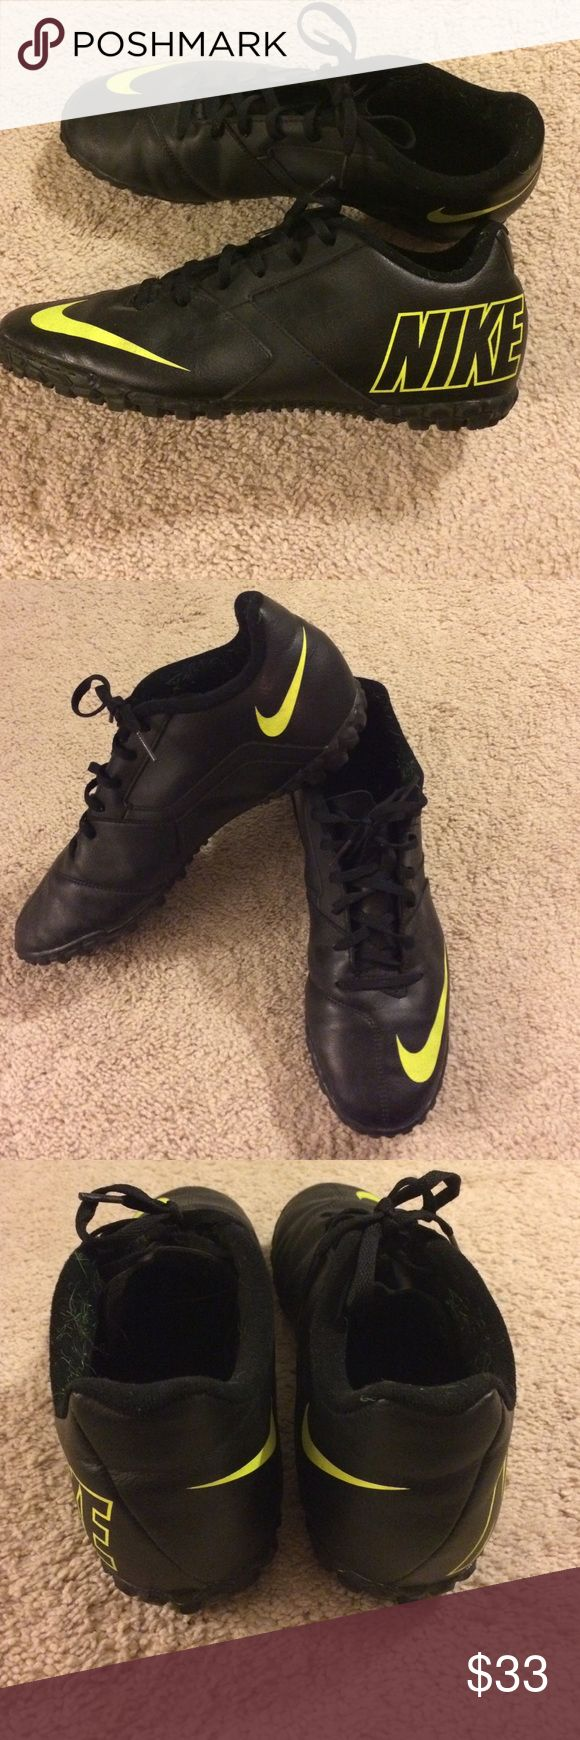 Nike Bomba II Turf shoes, trainer's size 10.5 Only worn once! The Nike Bomba II features the ideal turf soccer shoe for the competitive small sided player who wants a soccer shoe with excellent shot control, traction and a classic upper look. Nike Shoes Athletic Shoes